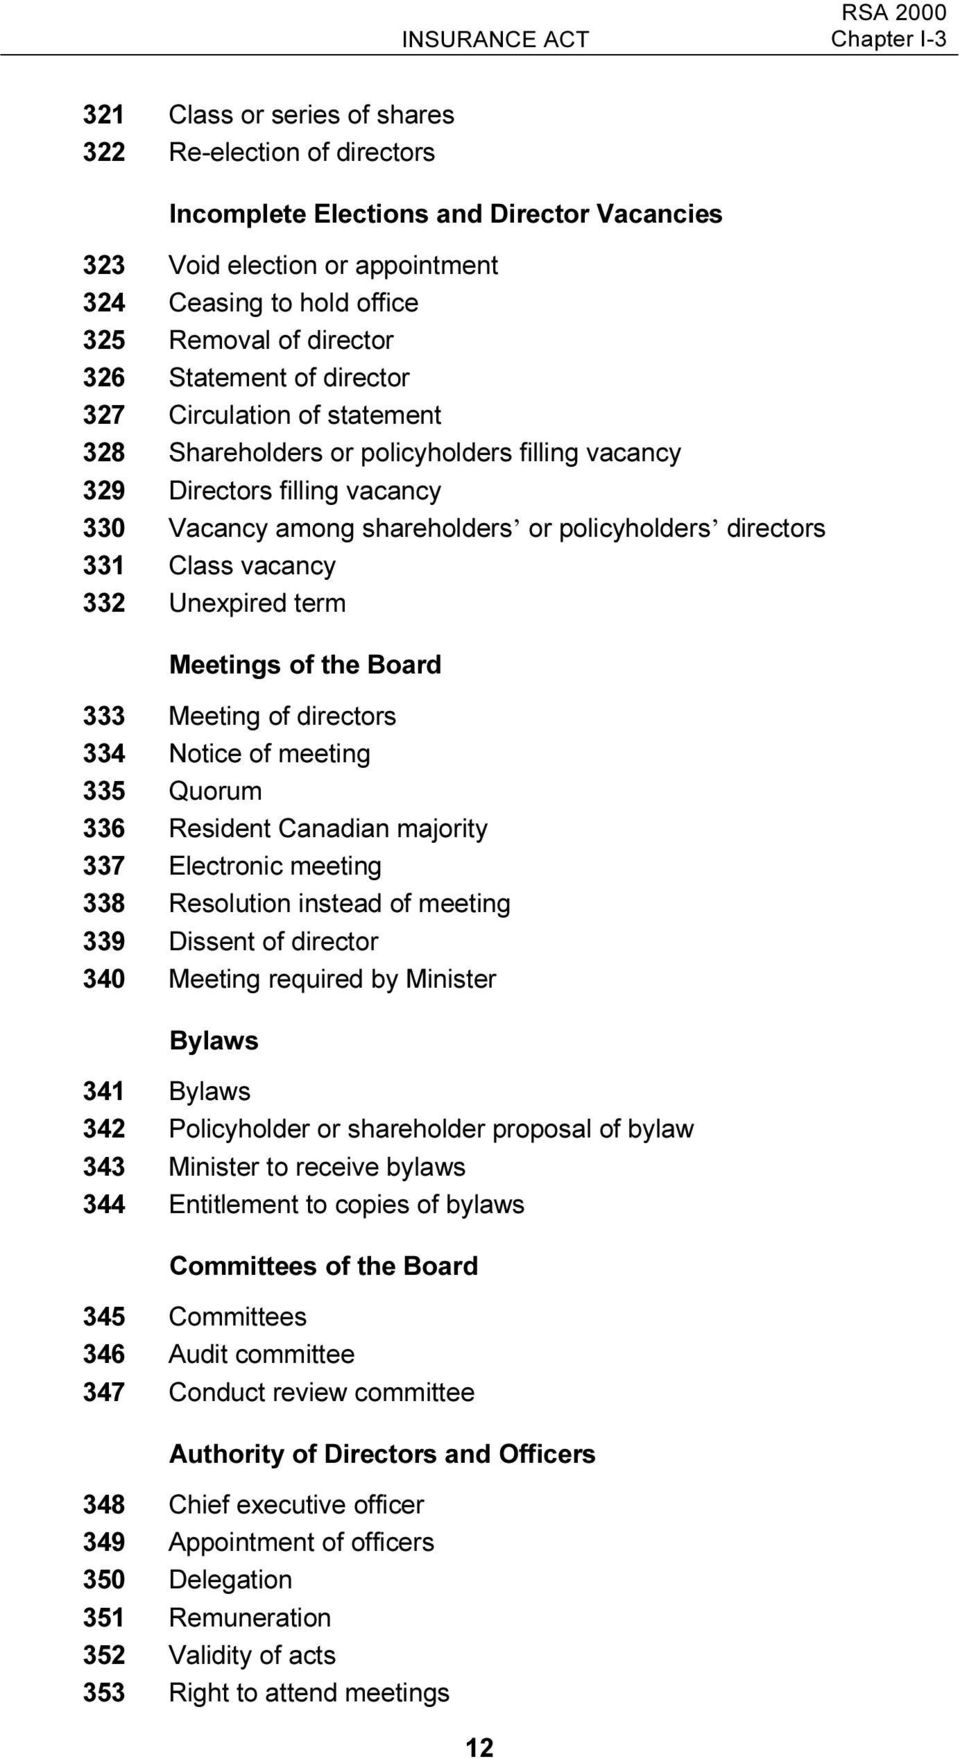 directors 331 Class vacancy 332 Unexpired term Meetings of the Board 333 Meeting of directors 334 Notice of meeting 335 Quorum 336 Resident Canadian majority 337 Electronic meeting 338 Resolution